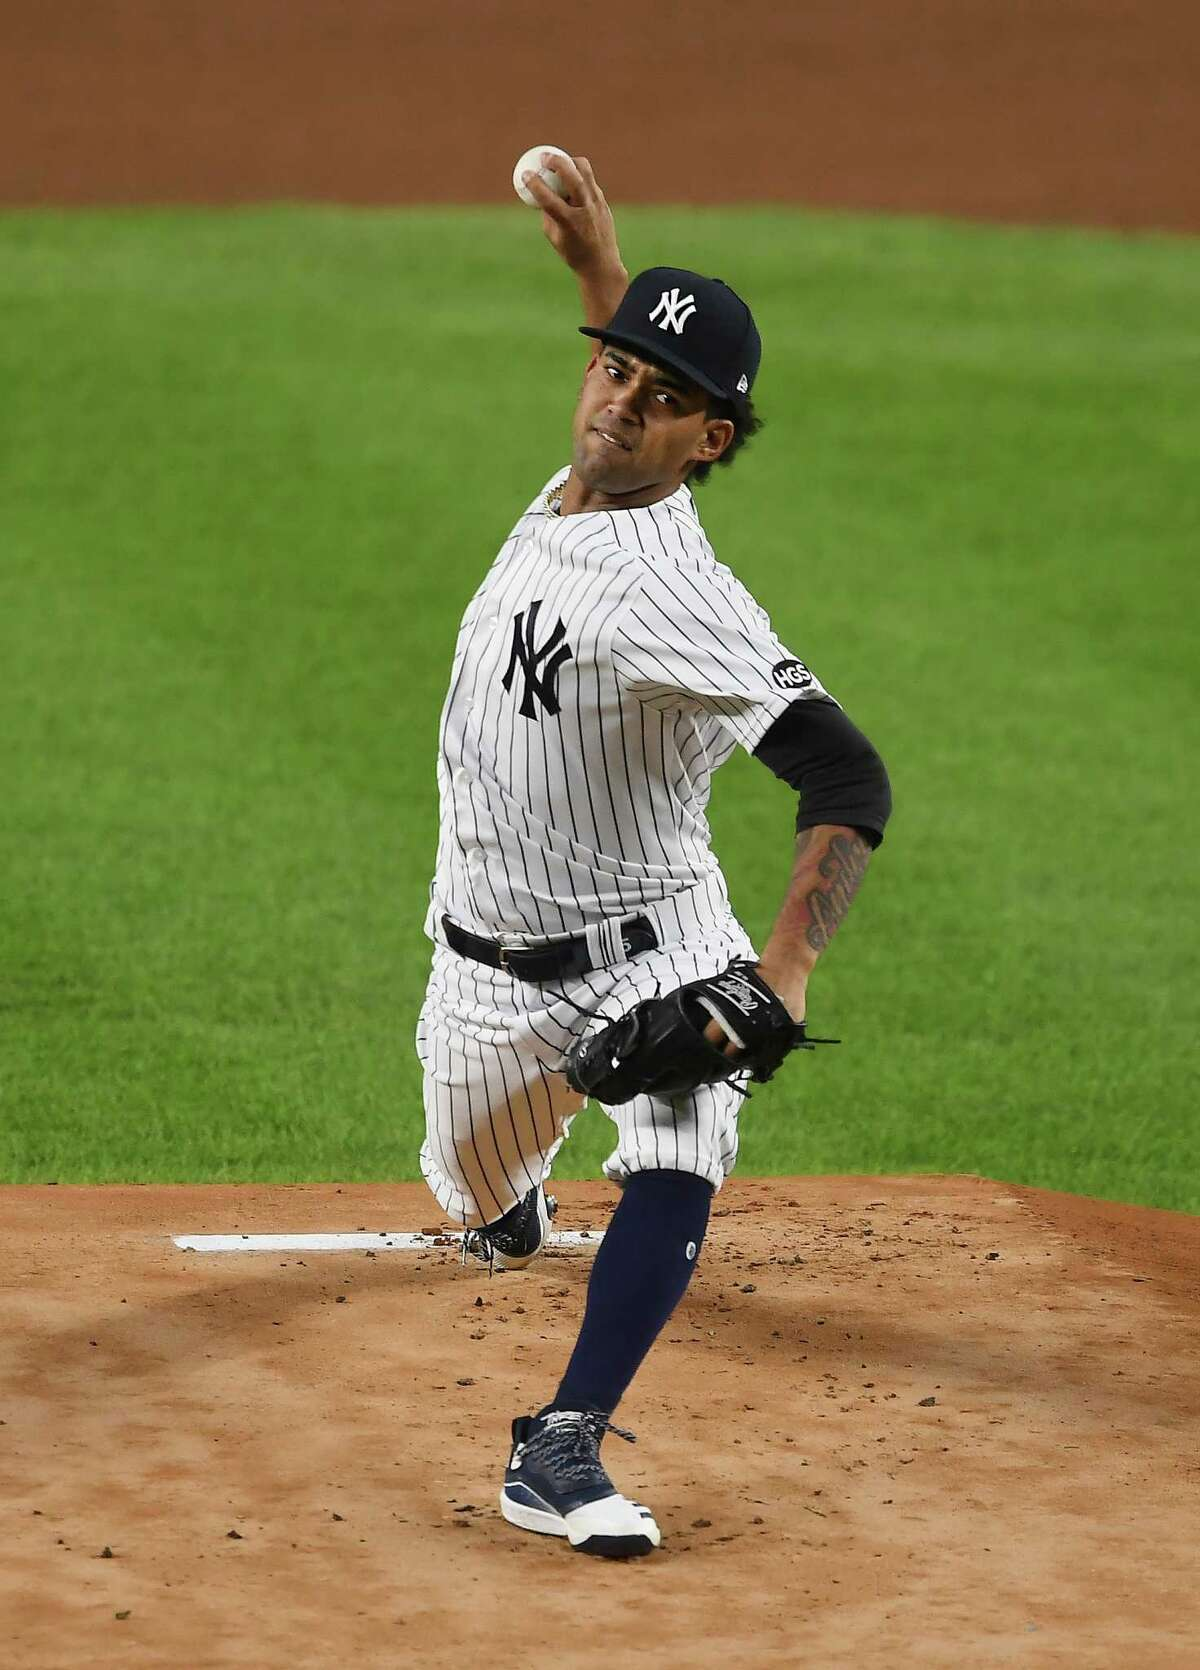 NEW YORK, NEW YORK - SEPTEMBER 15: Deivi Garcia #83 of the New York Yankees pitches during the first inning against the Toronto Blue Jays at Yankee Stadium on September 15, 2020 in the Bronx borough of New York City. (Photo by Sarah Stier/Getty Images)